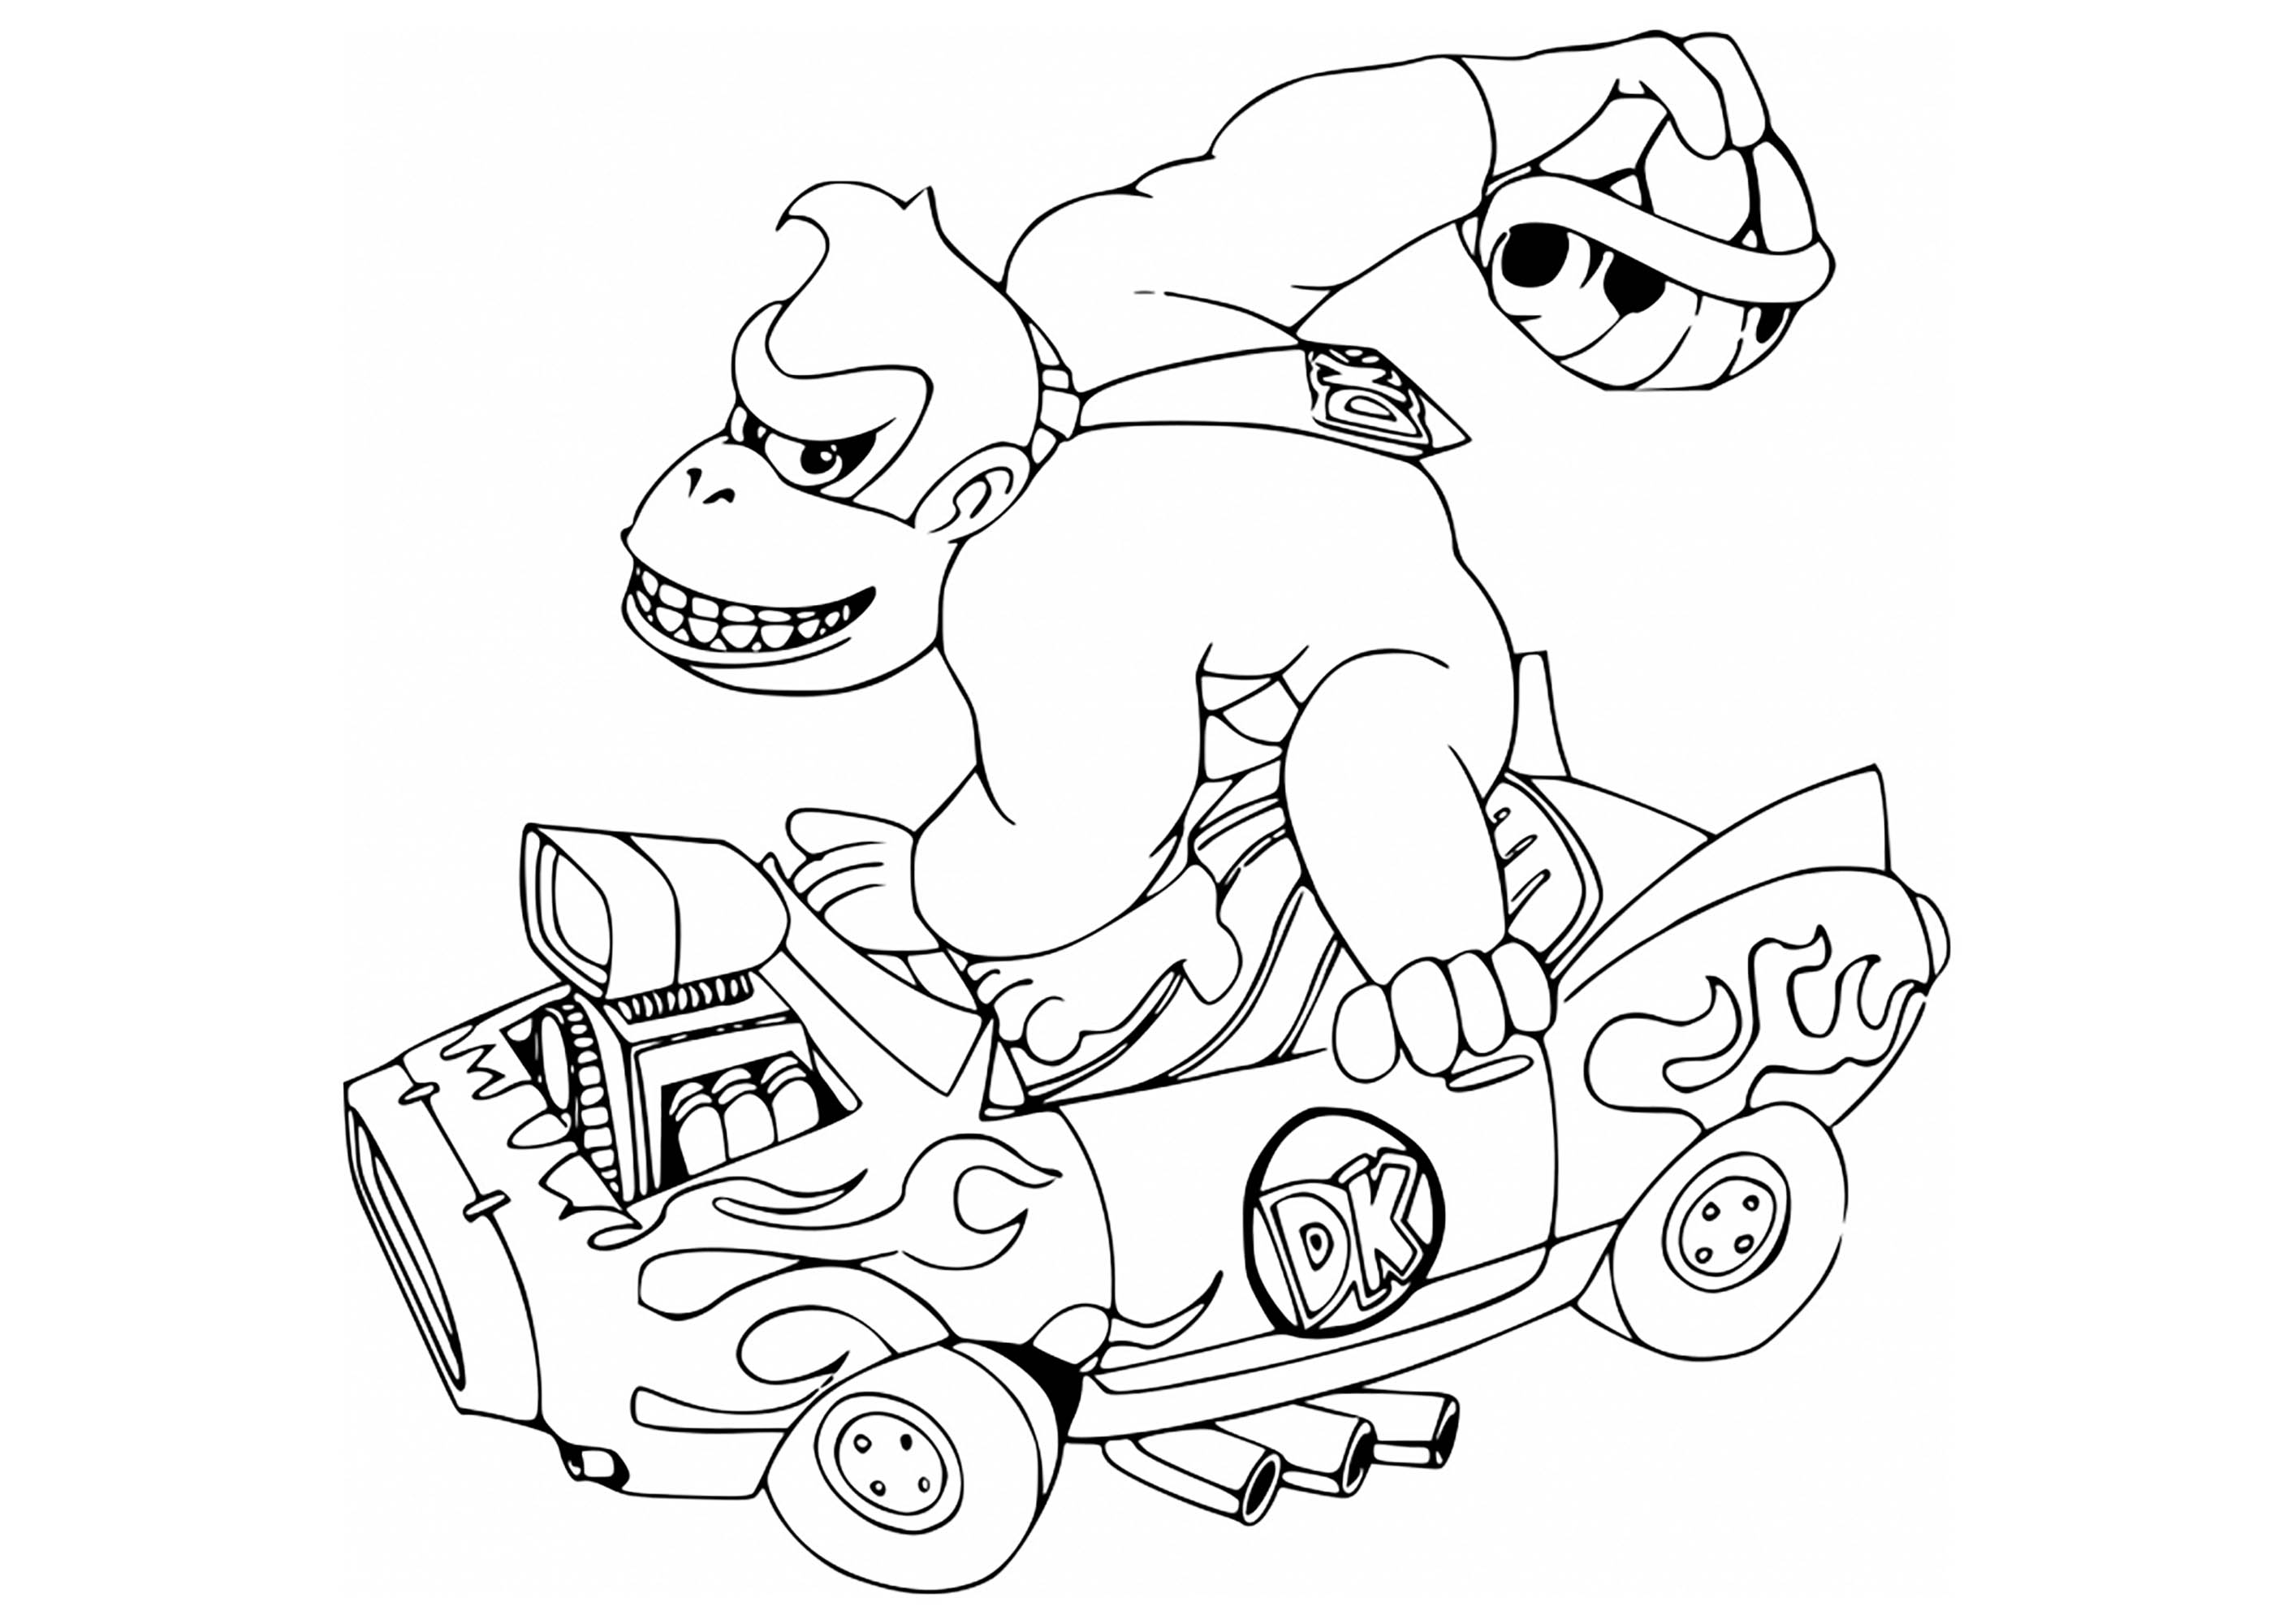 kong kart mario kart coloring pages